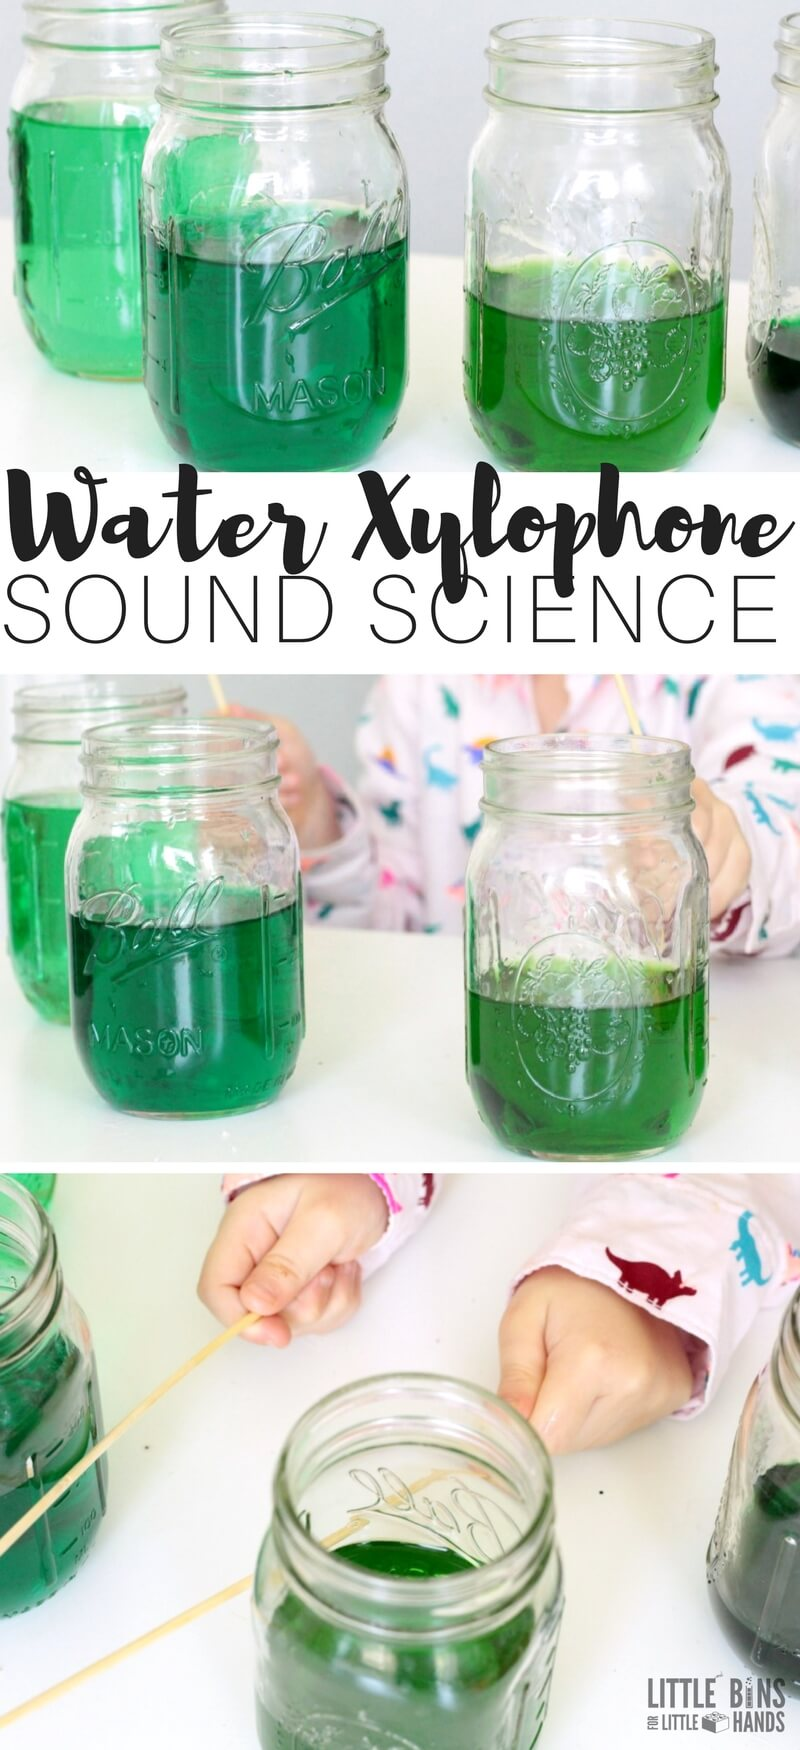 Make a homemade water xylophone sound science experiment for kids. A playful way to explore the science of sound with an easy kitchen science experiment and DIY water xylophone activity.